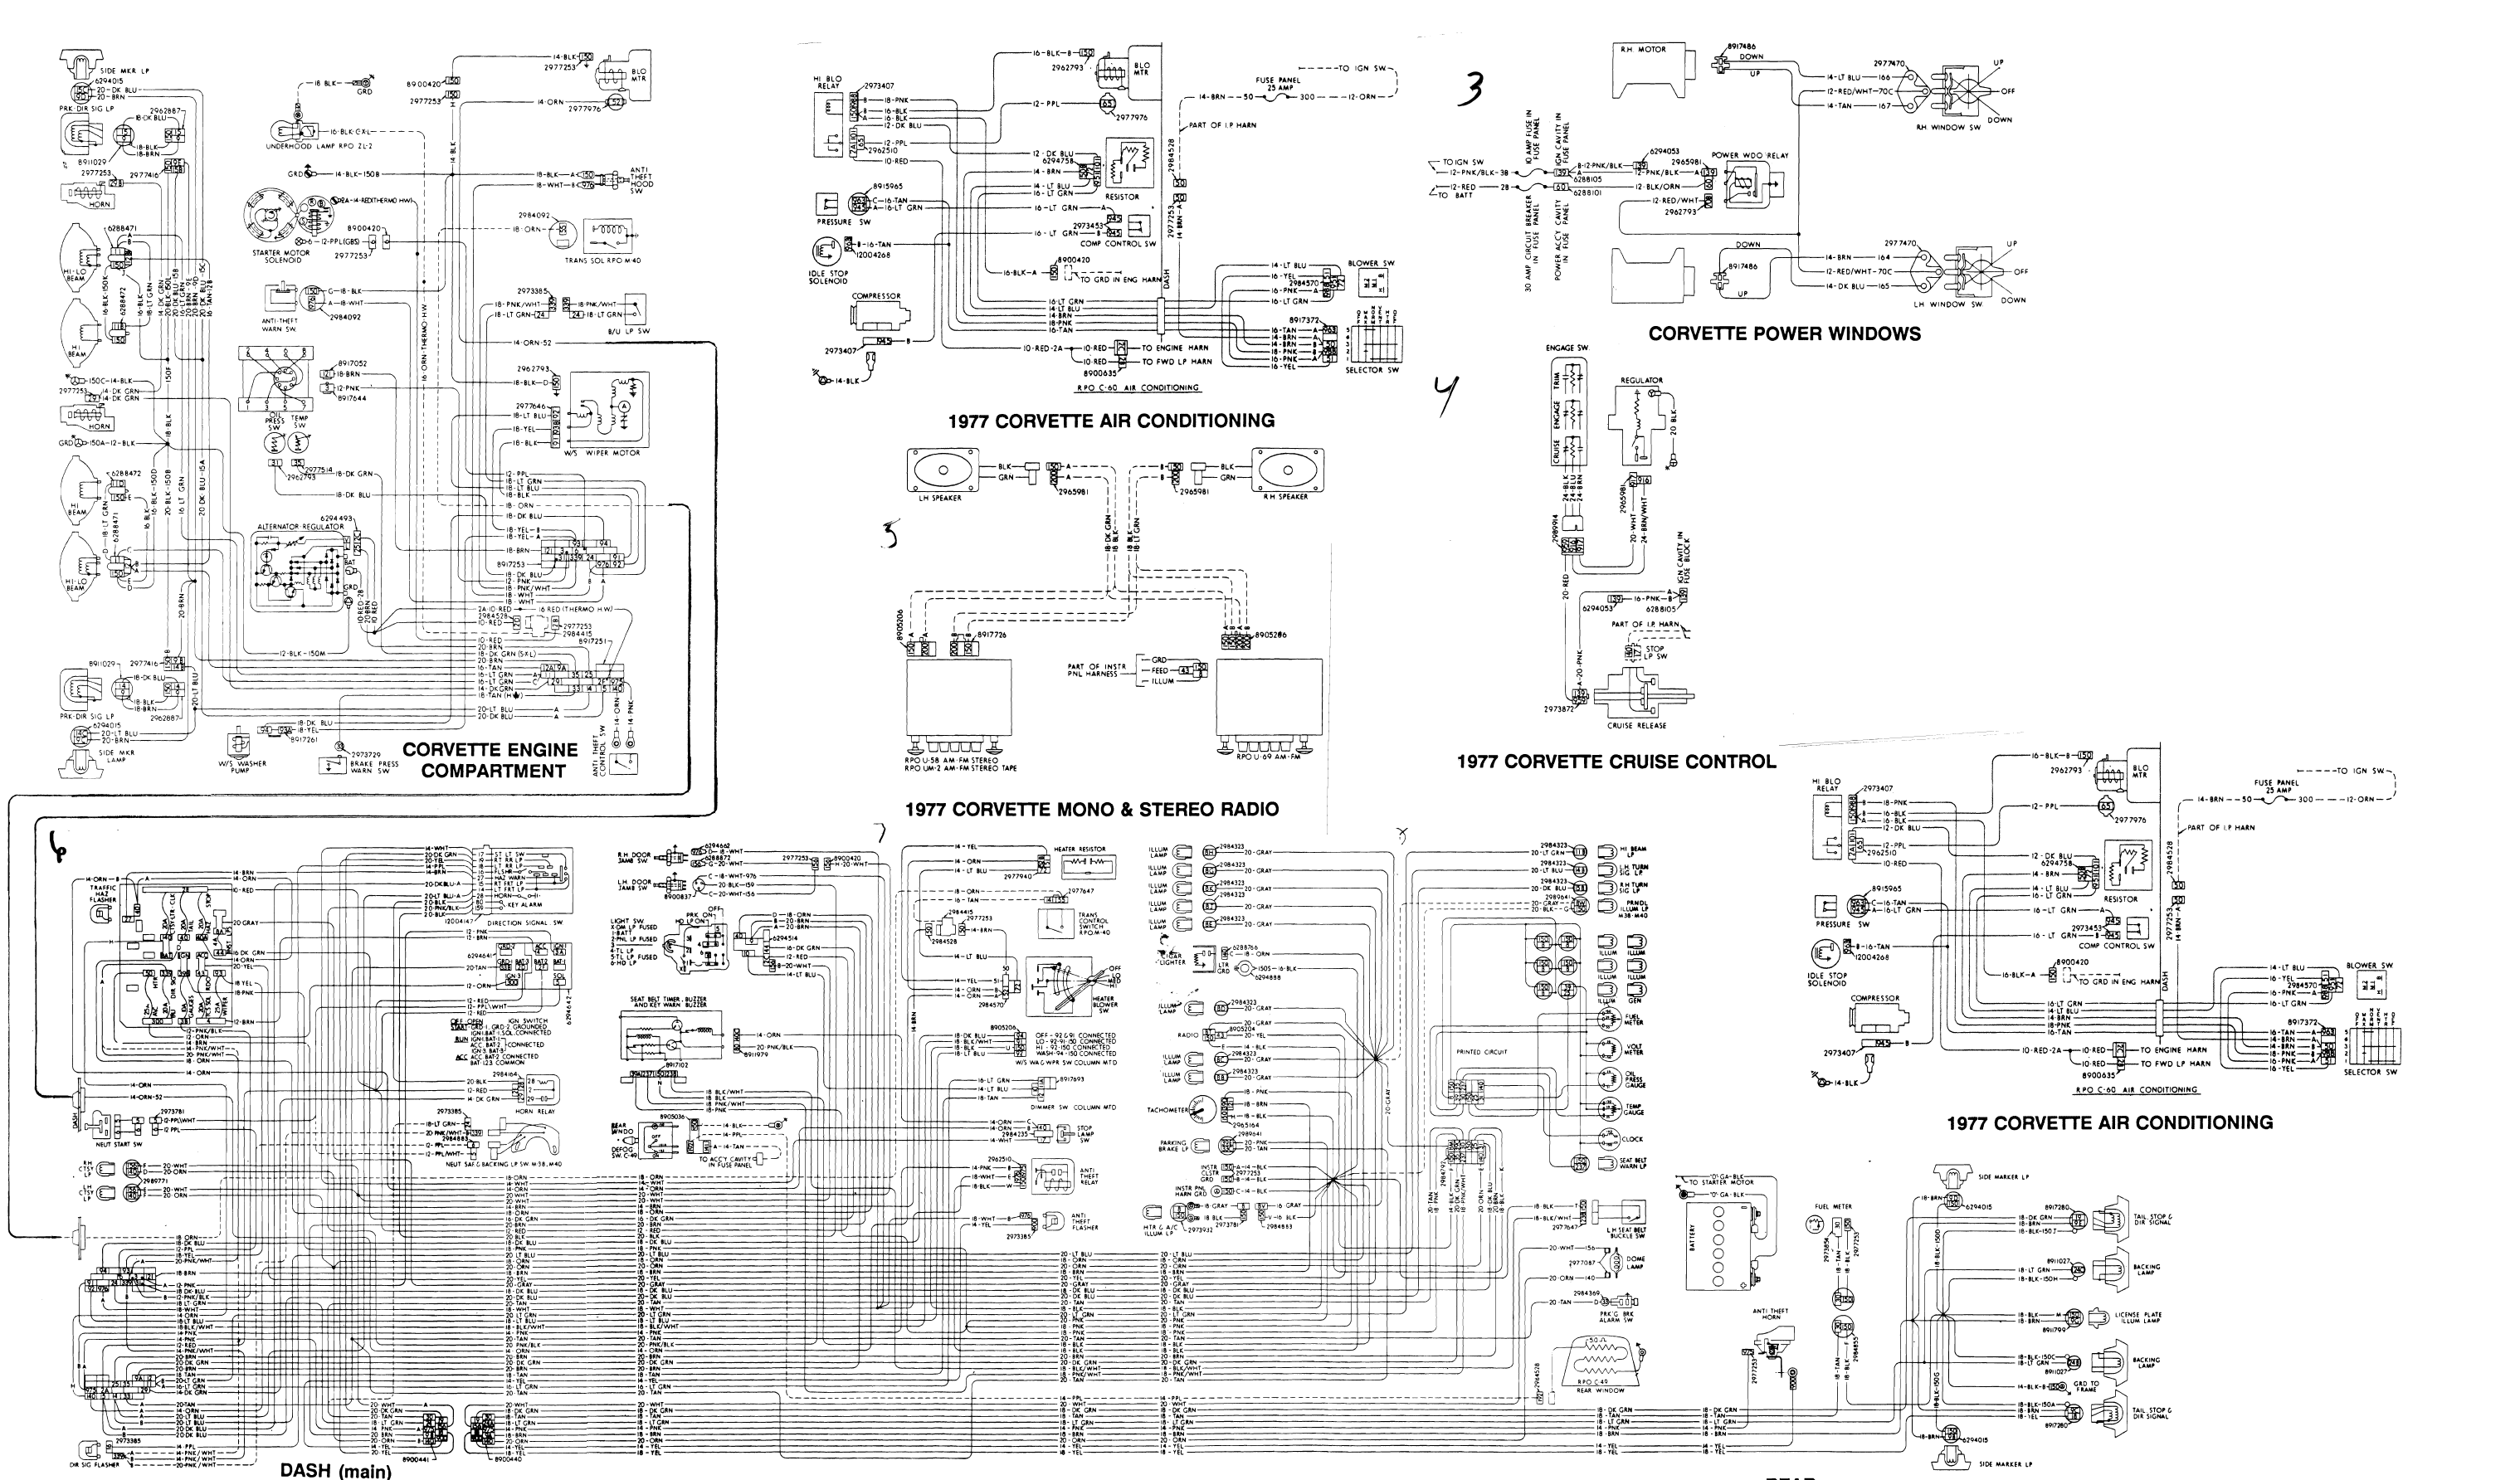 Wiring Diagram Corvette Stingray on 88 corvette vacuum diagram, 1973 corvette power window circuit, 1973 corvette engine, 1973 corvette cover, 1973 corvette starter wiring, 1973 corvette service manual, 1973 corvette carburetor, 1987 corvette air conditioner diagram, 1969 corvette vacuum hose diagram, 79 corvette ac system diagram, 1973 corvette speedometer, 1973 corvette coil, 1973 corvette dash, 1973 corvette air cleaner, 1973 corvette frame, 1974 corvette fuse box diagram, 1973 corvette oil filter, 1973 corvette alternator wiring, 1973 corvette exhaust, 1973 corvette brakes,